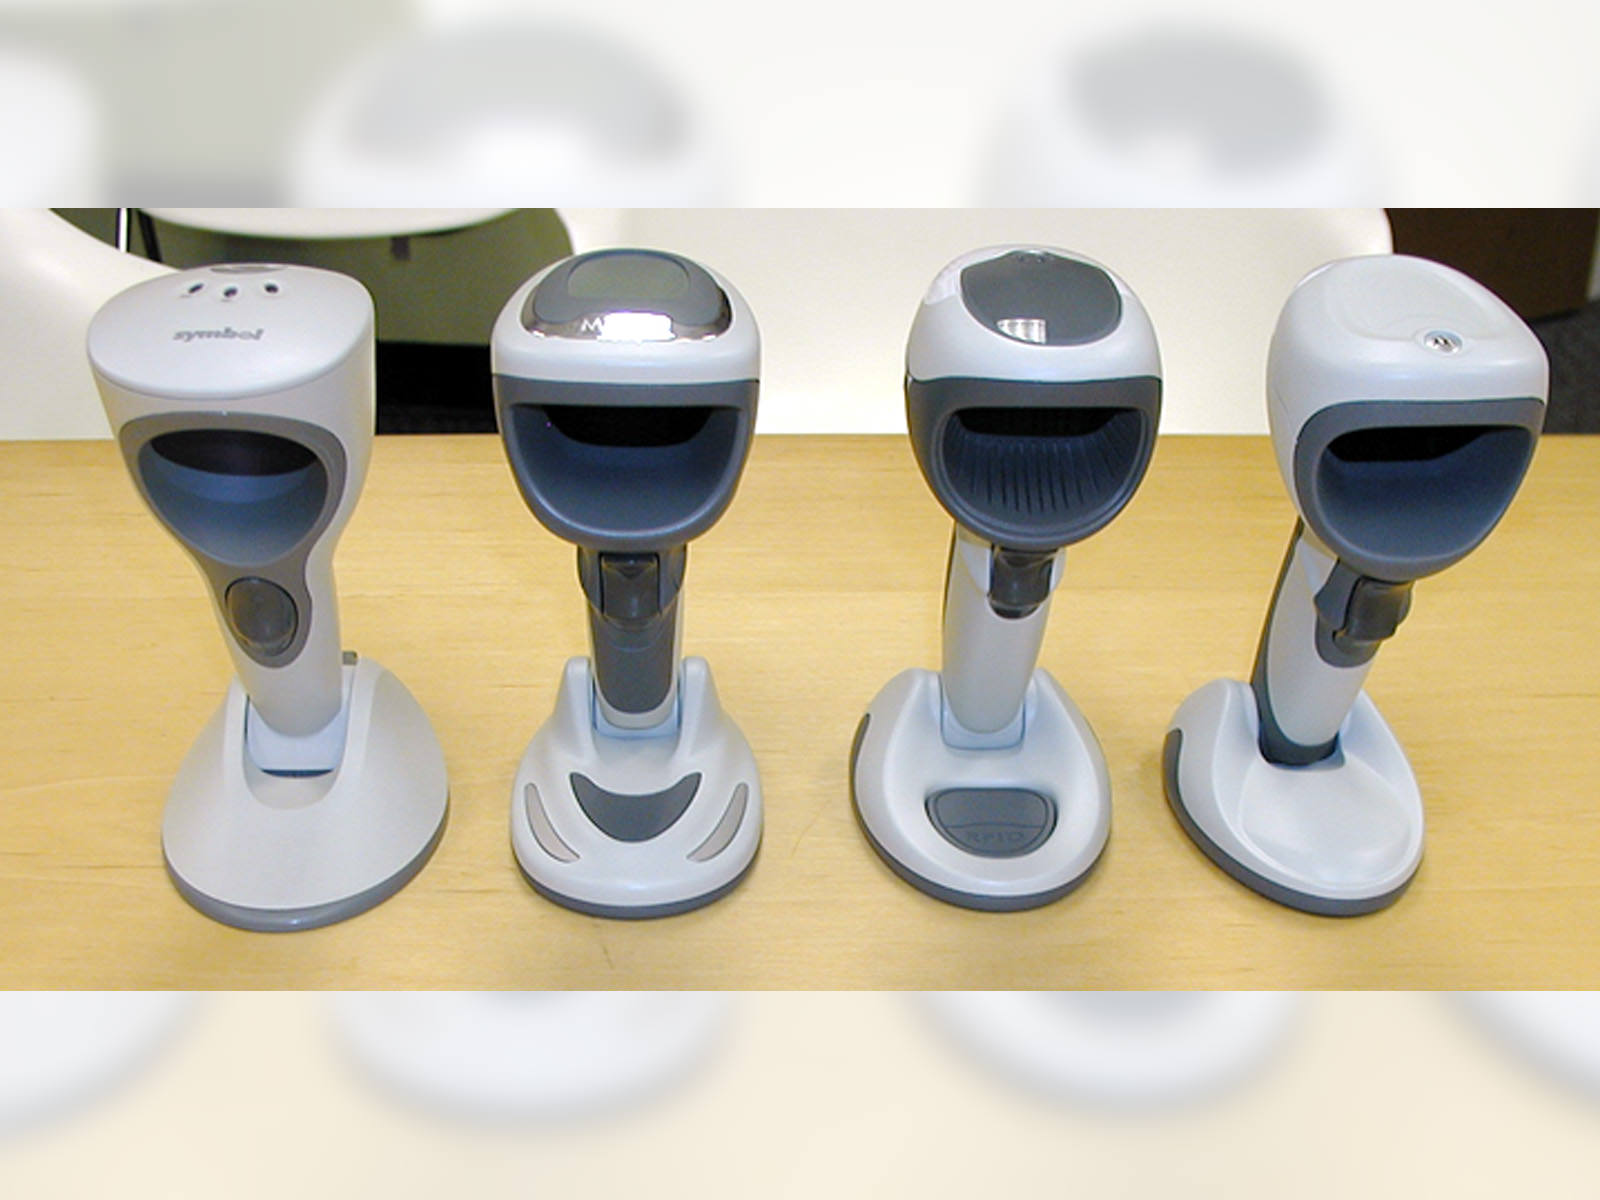 Physical appearance models of the 3 DS9808 concepts next to the previous generation scanner